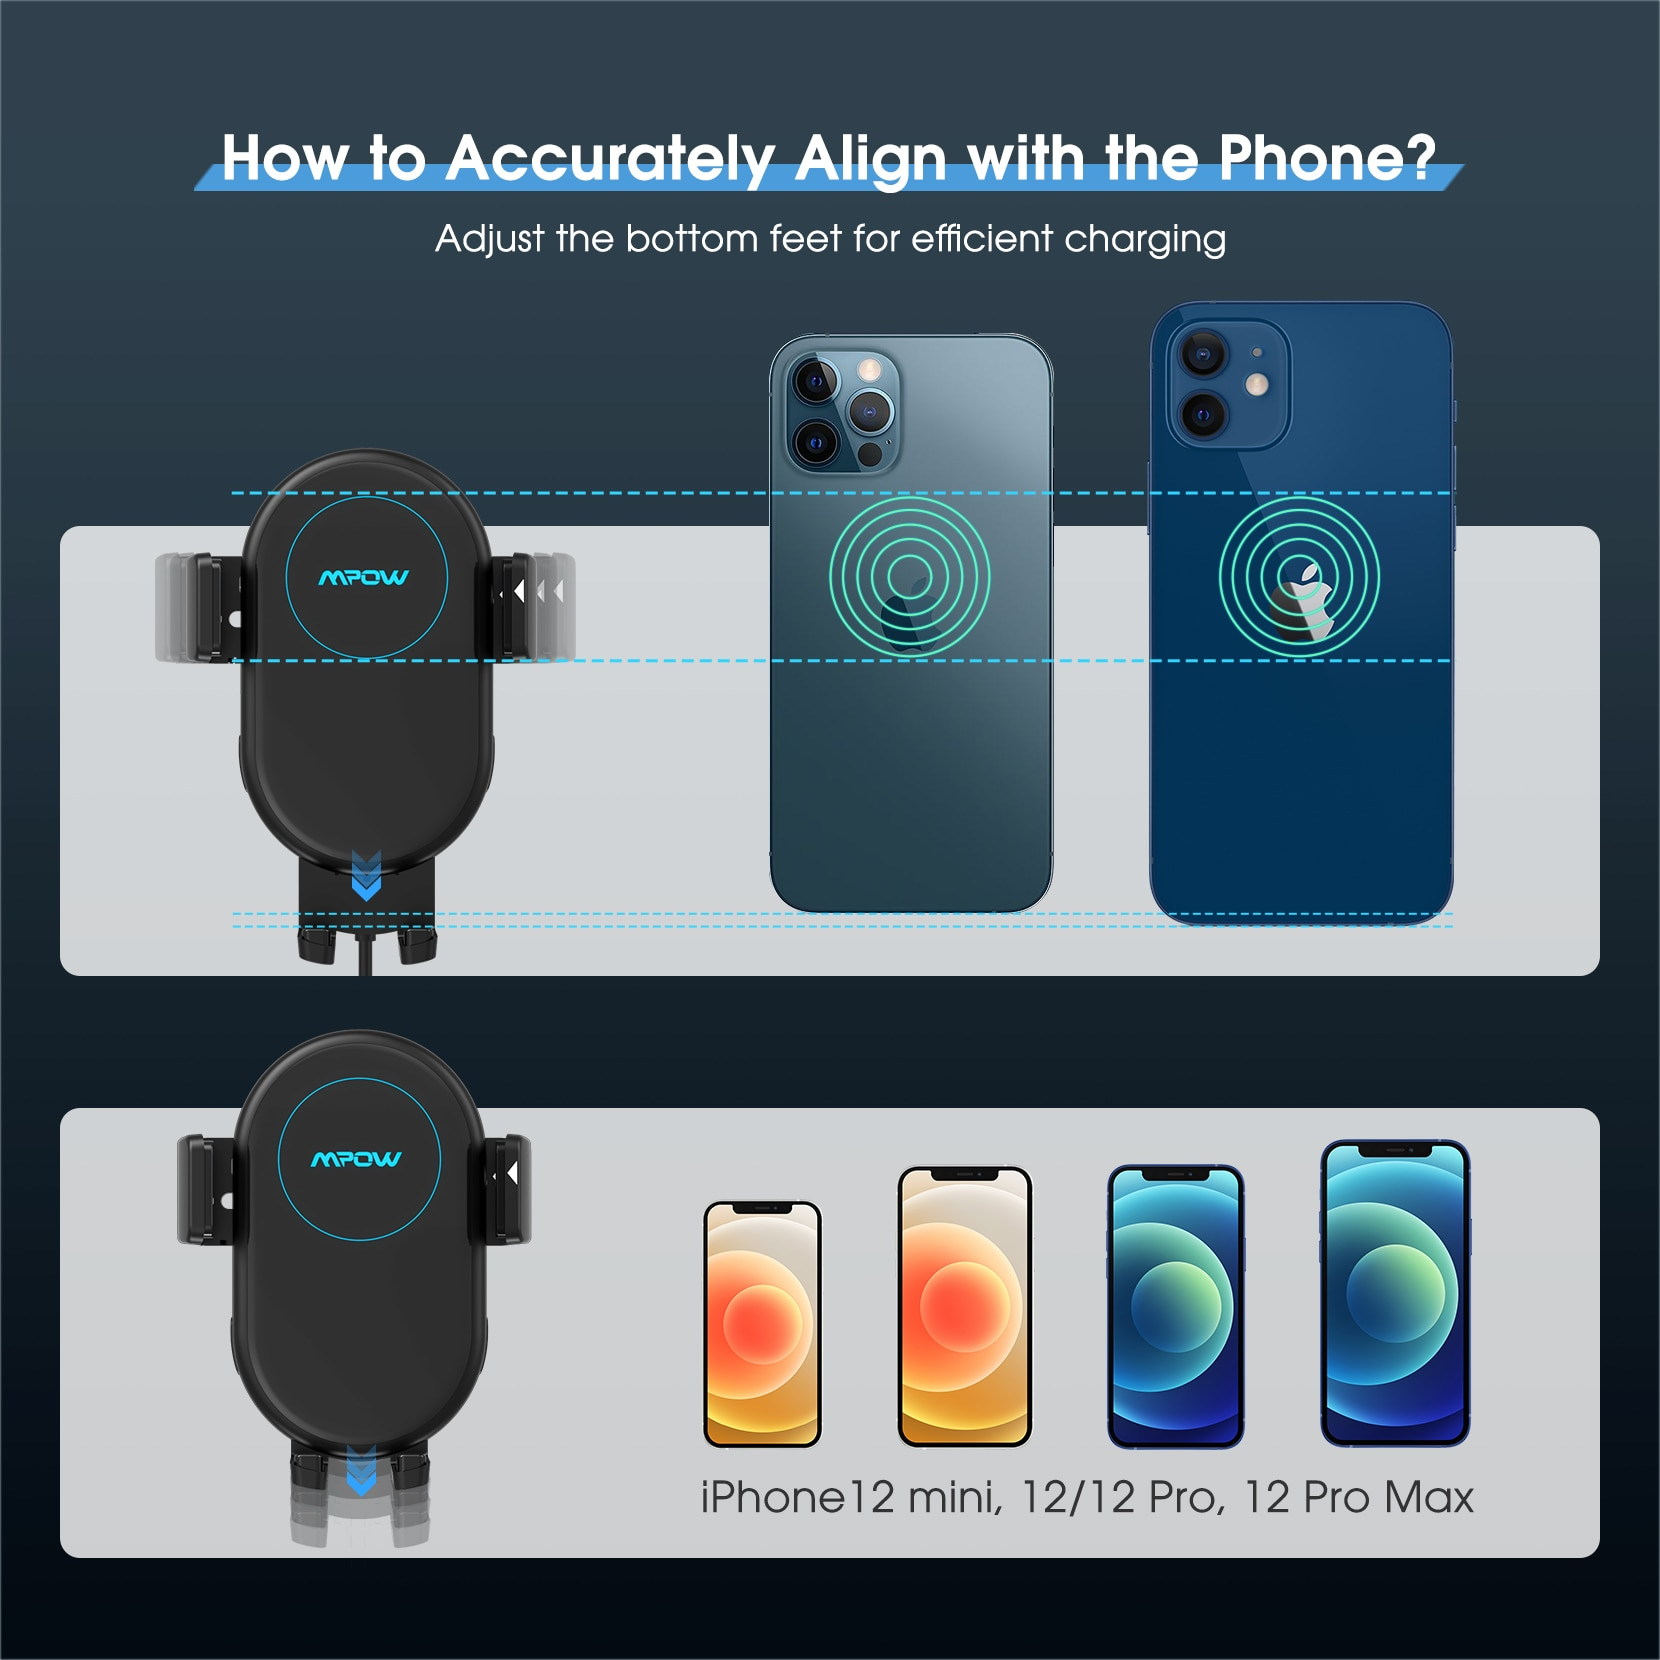 H36577b5c953b4e47ba00ad042d4e02efS - MPOW CA164 Wireless Car Charger 10W Auto-clamping Qi Fast Charging Car Mount with Built-in Battery Cup Holder Vent Phone Holder